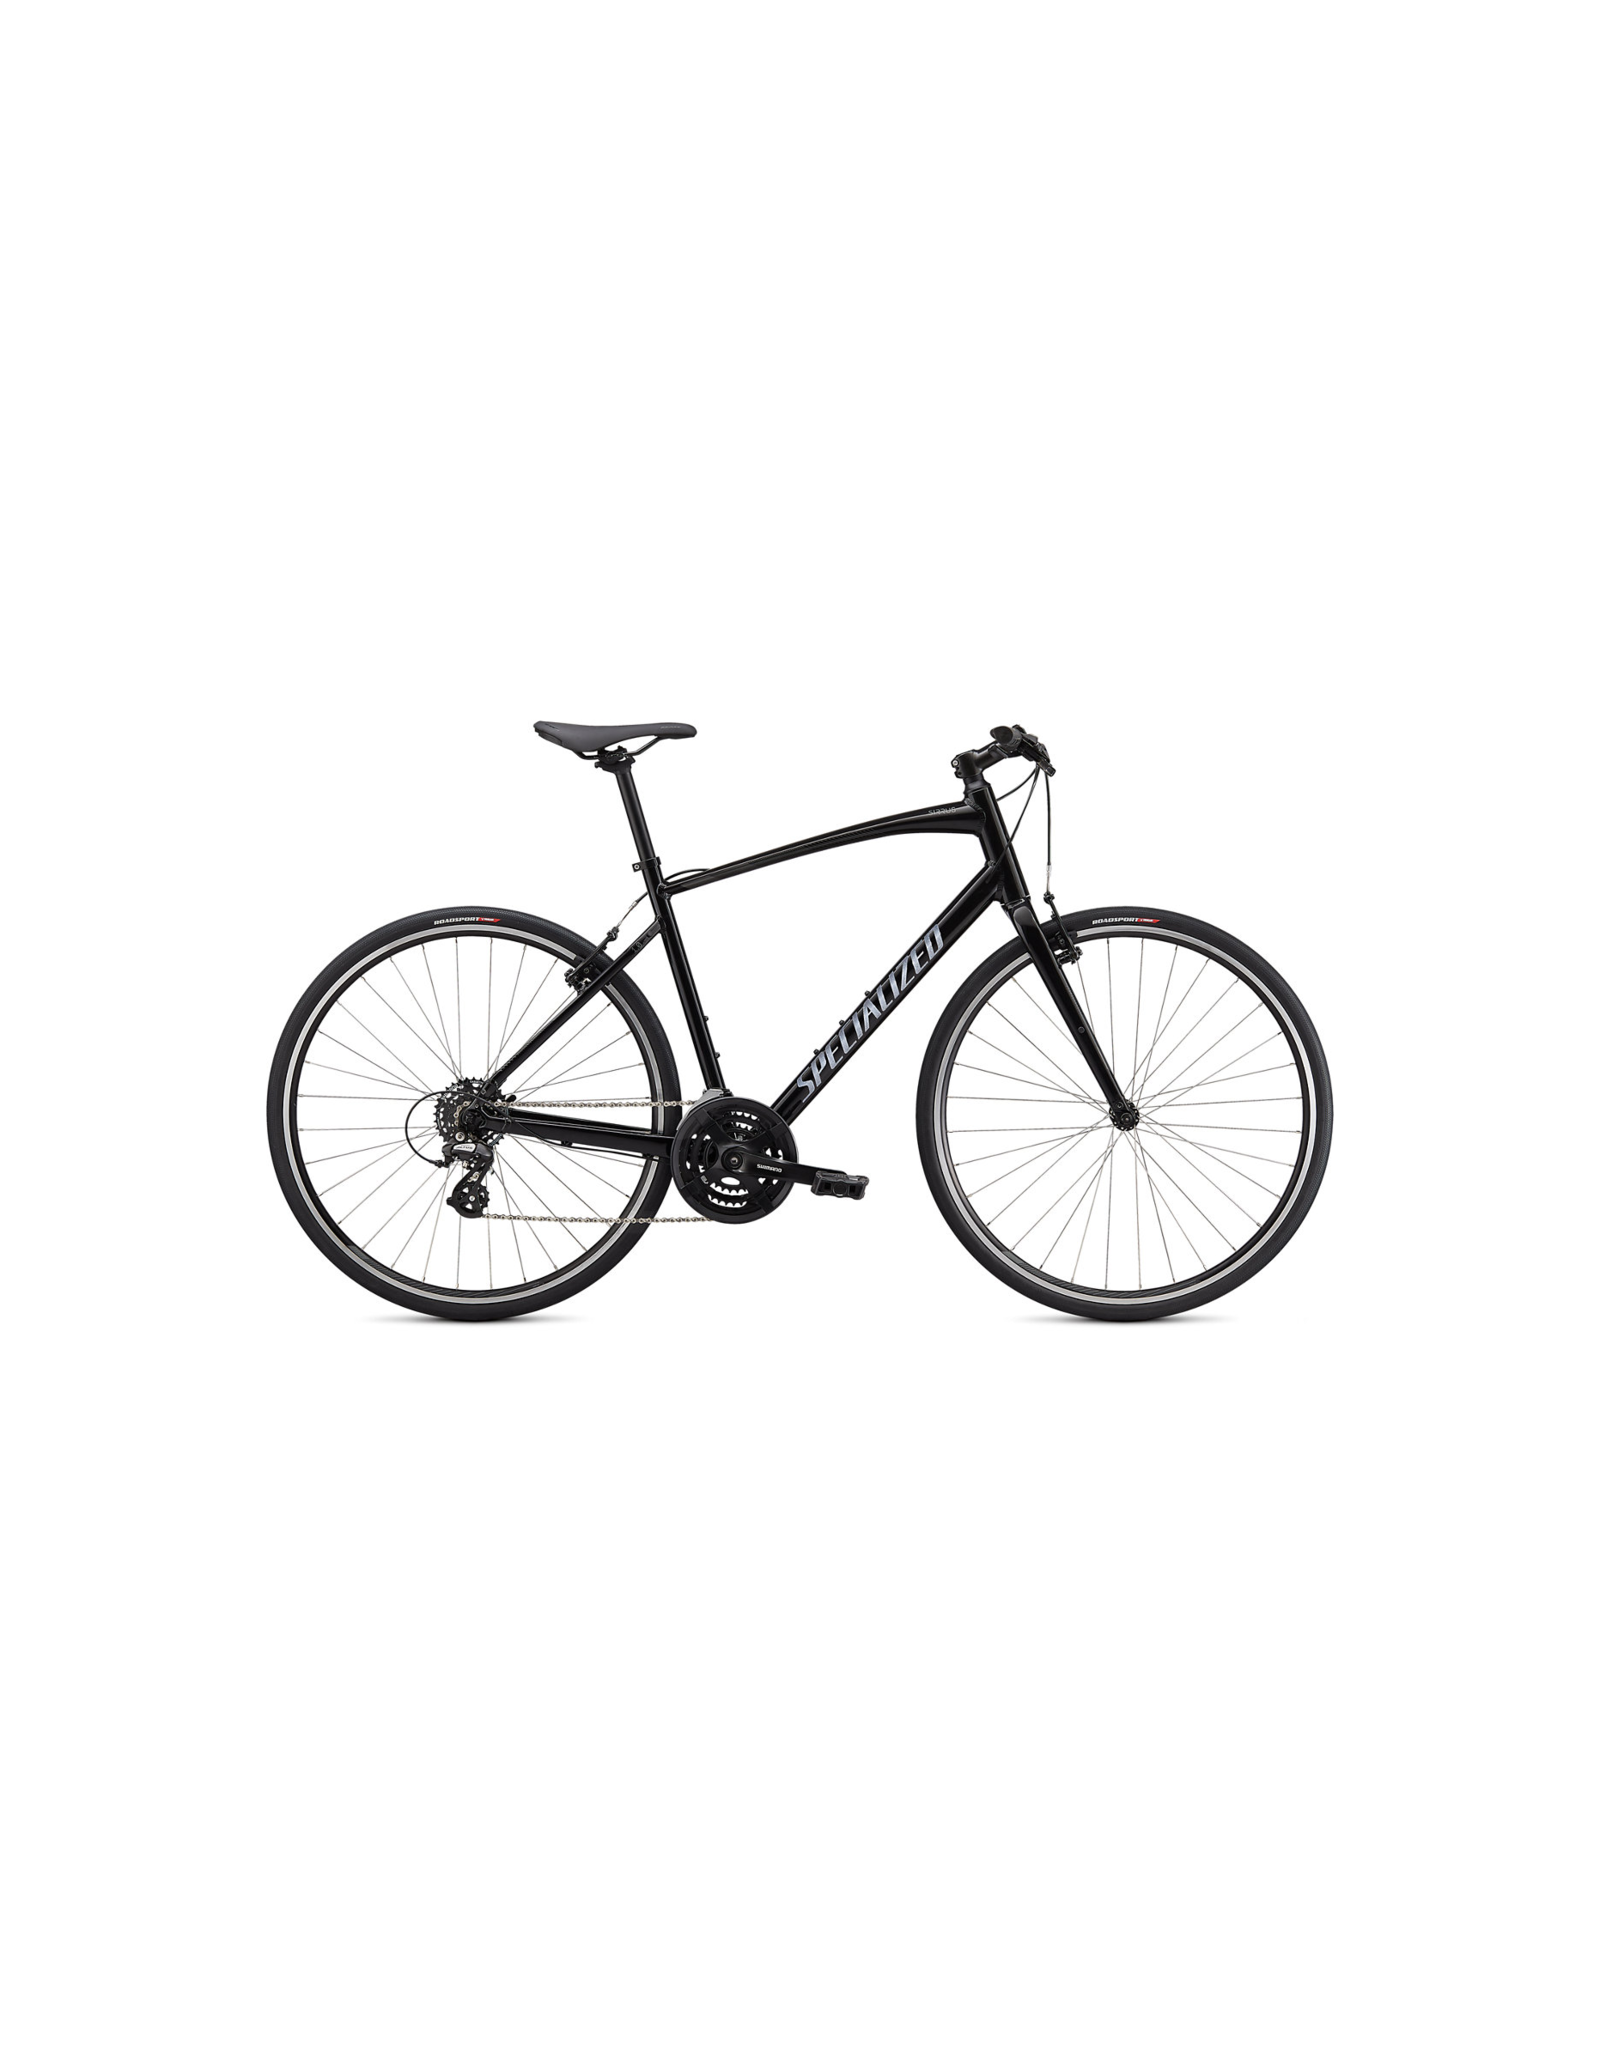 SPECIALIZED 2021 Specialized Sirrus 1.0 - BLK/CHAR/BLK - Large